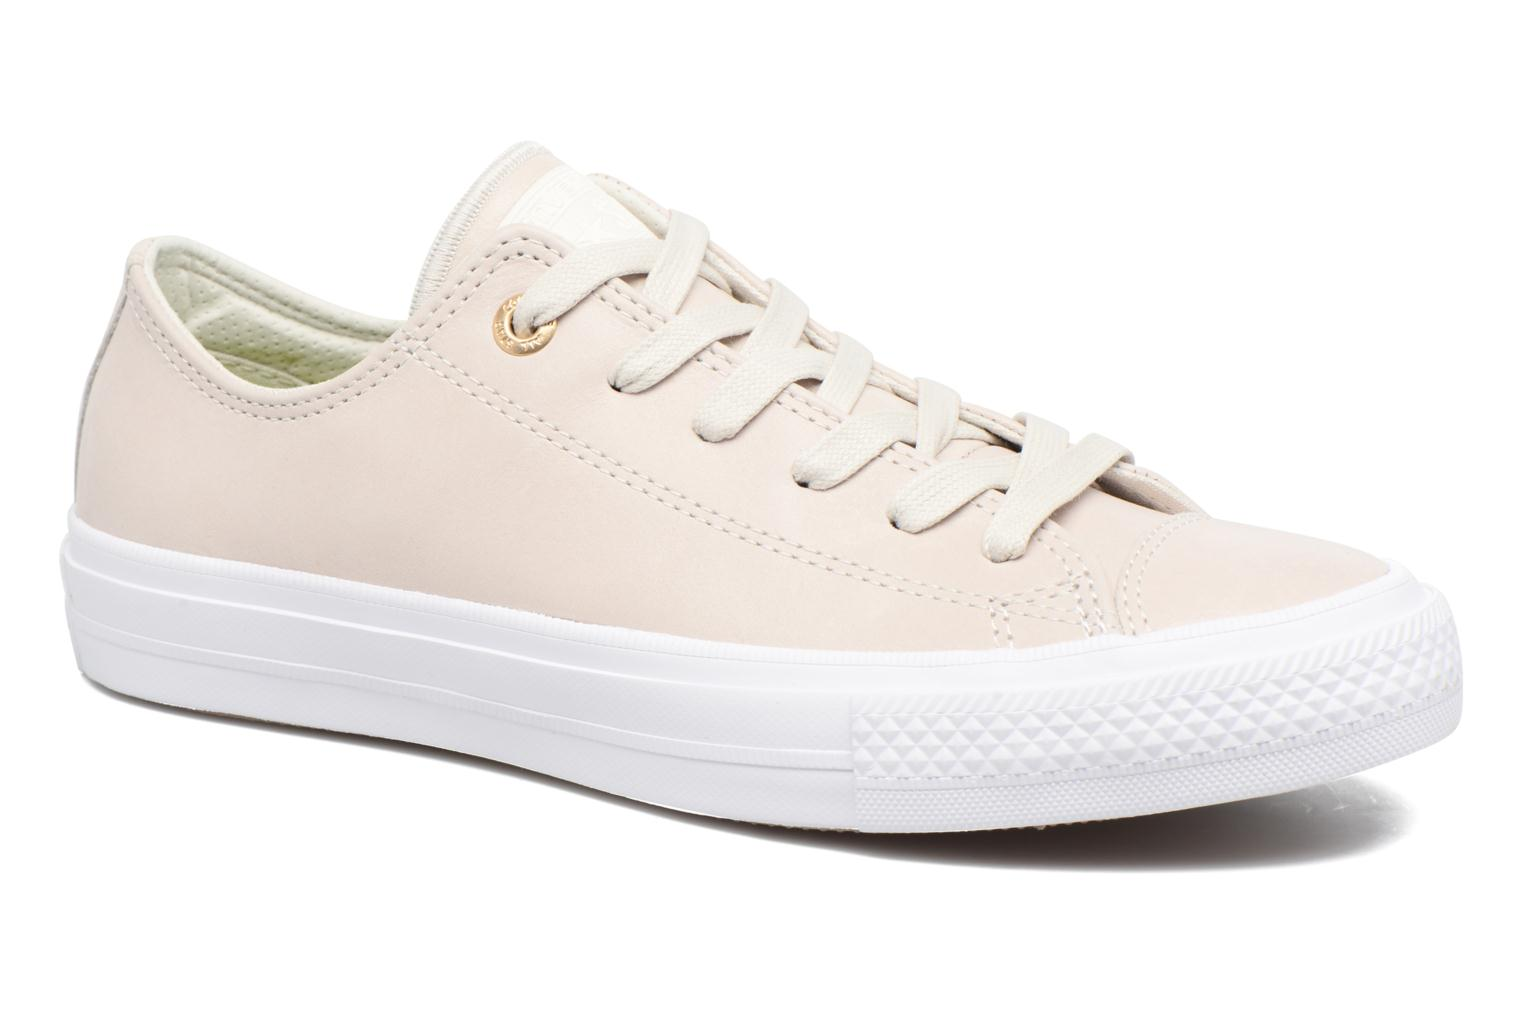 Chuck Taylor All Star II Ox Craft Leather Buff/Buff/White